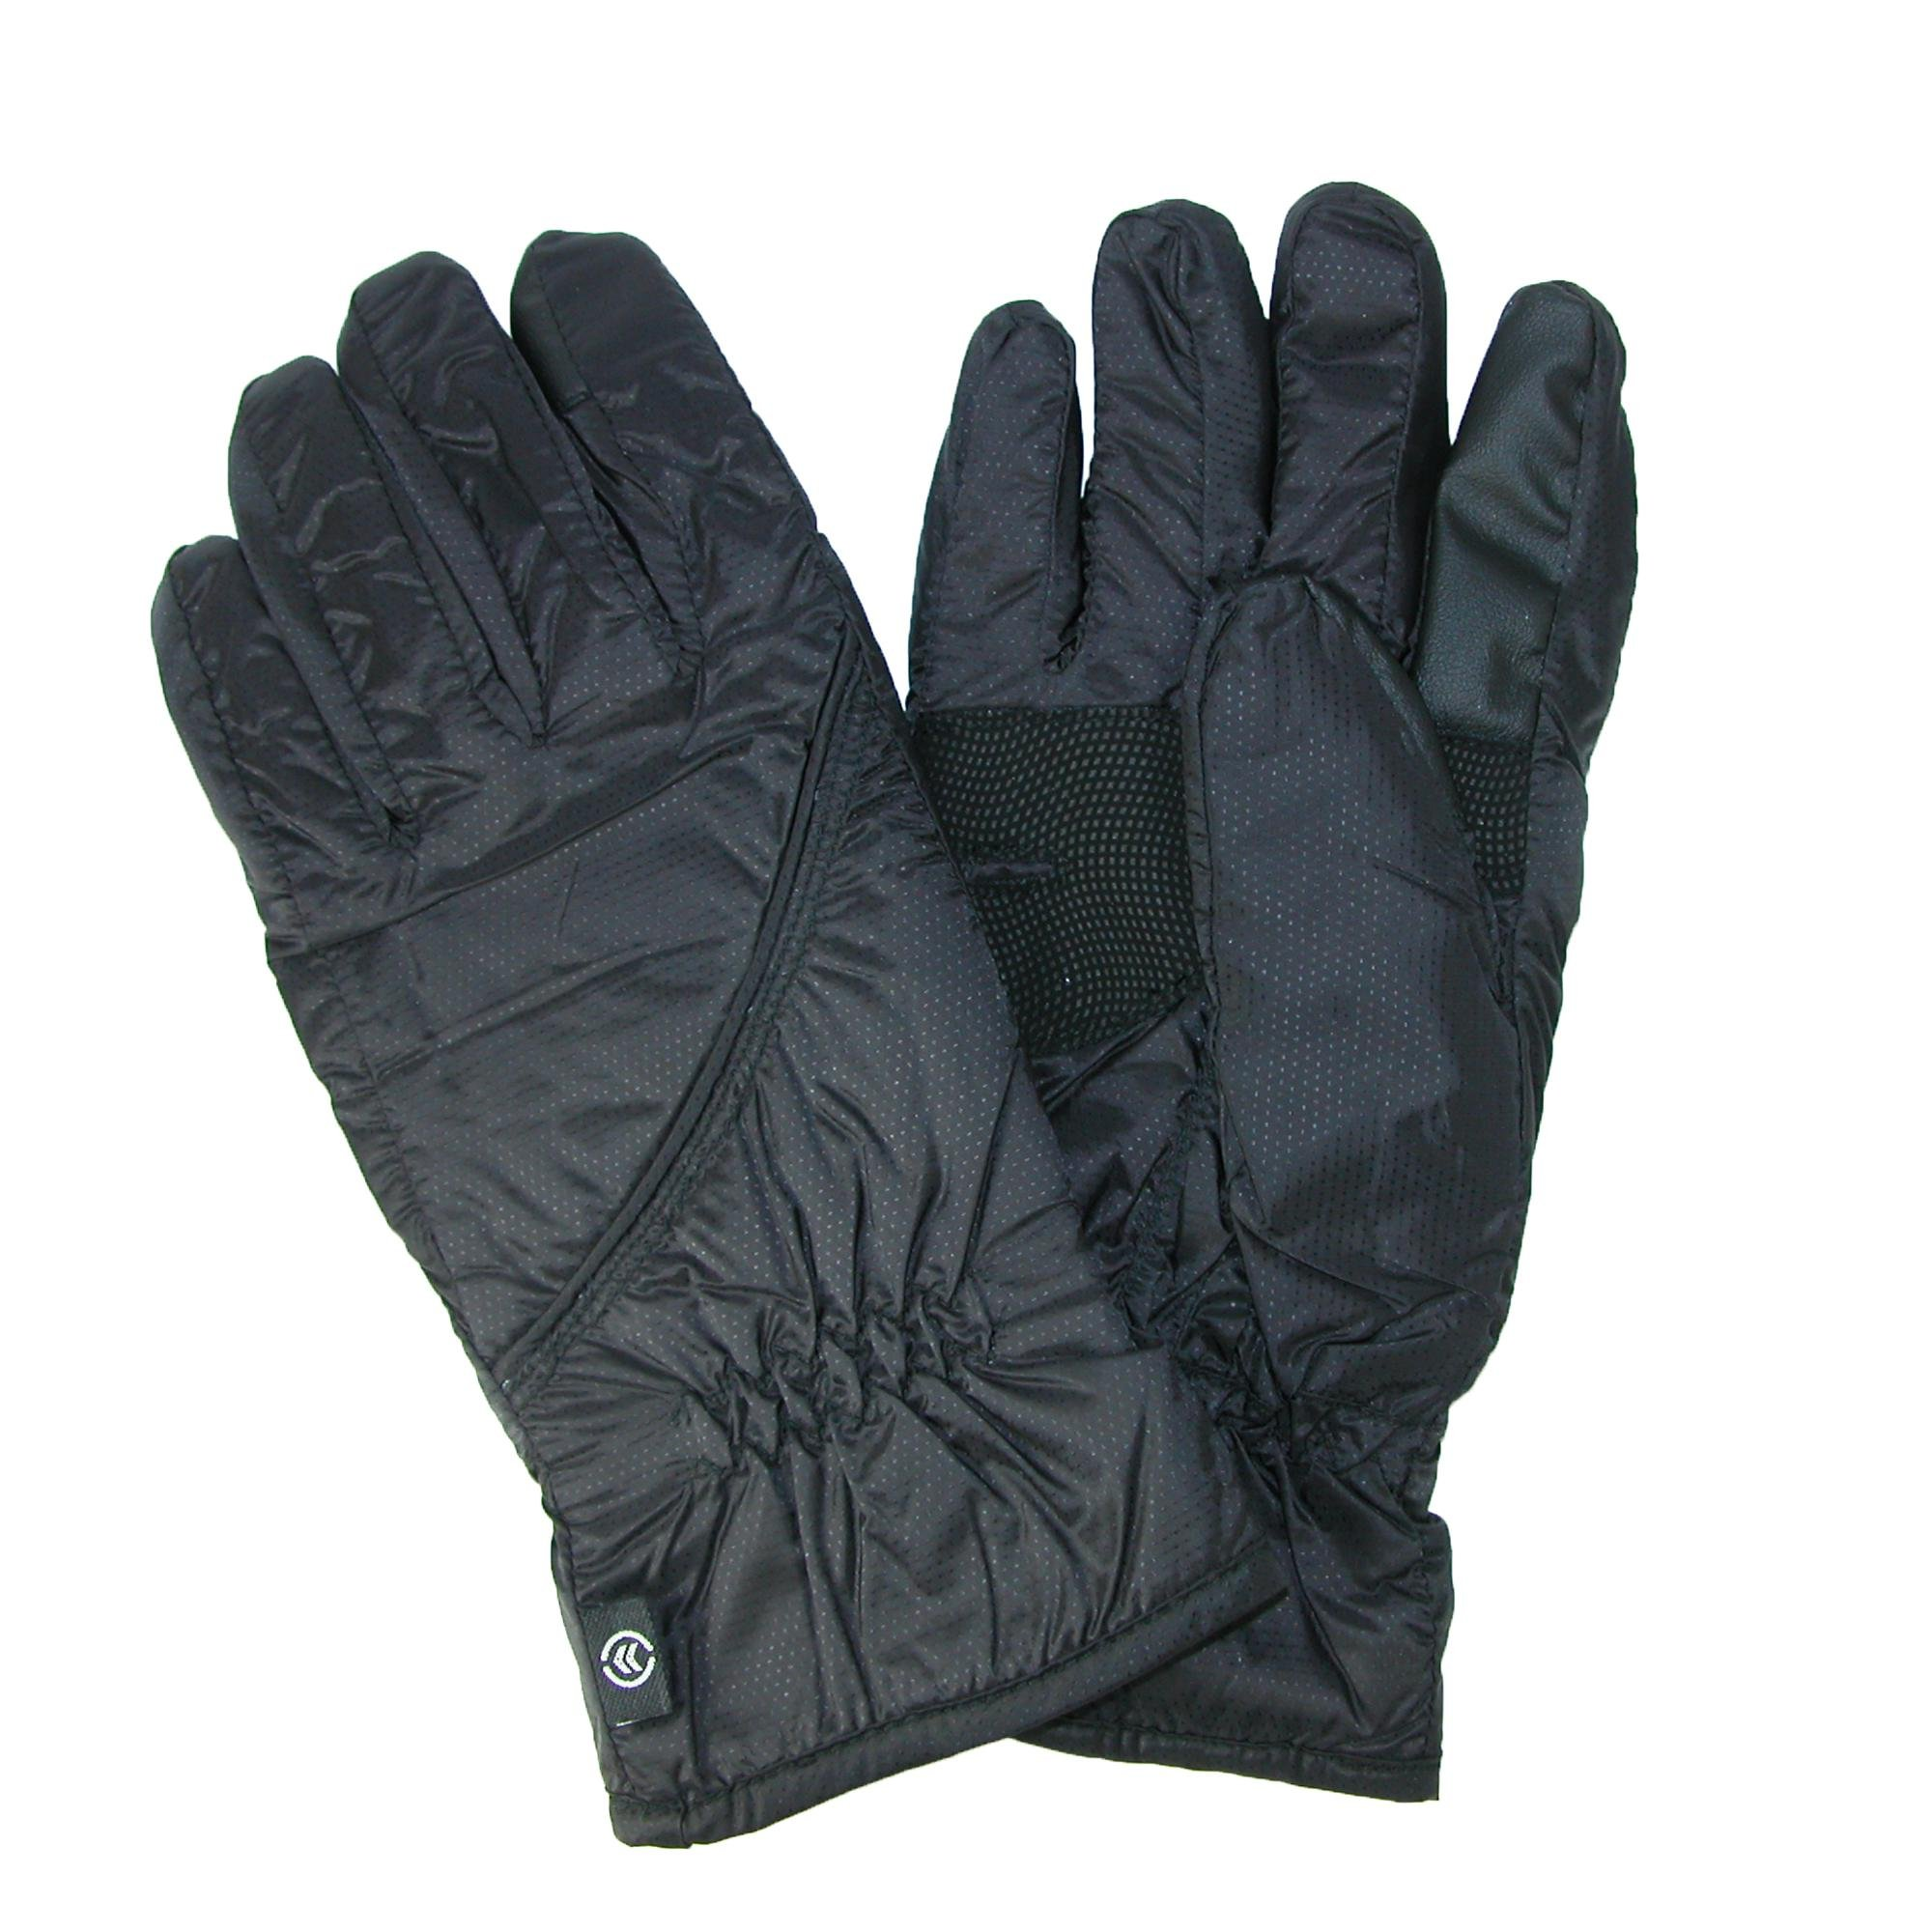 Isotoner Men's Packable Gloves, Small / Medium, Black by ISOTONER (Image #1)